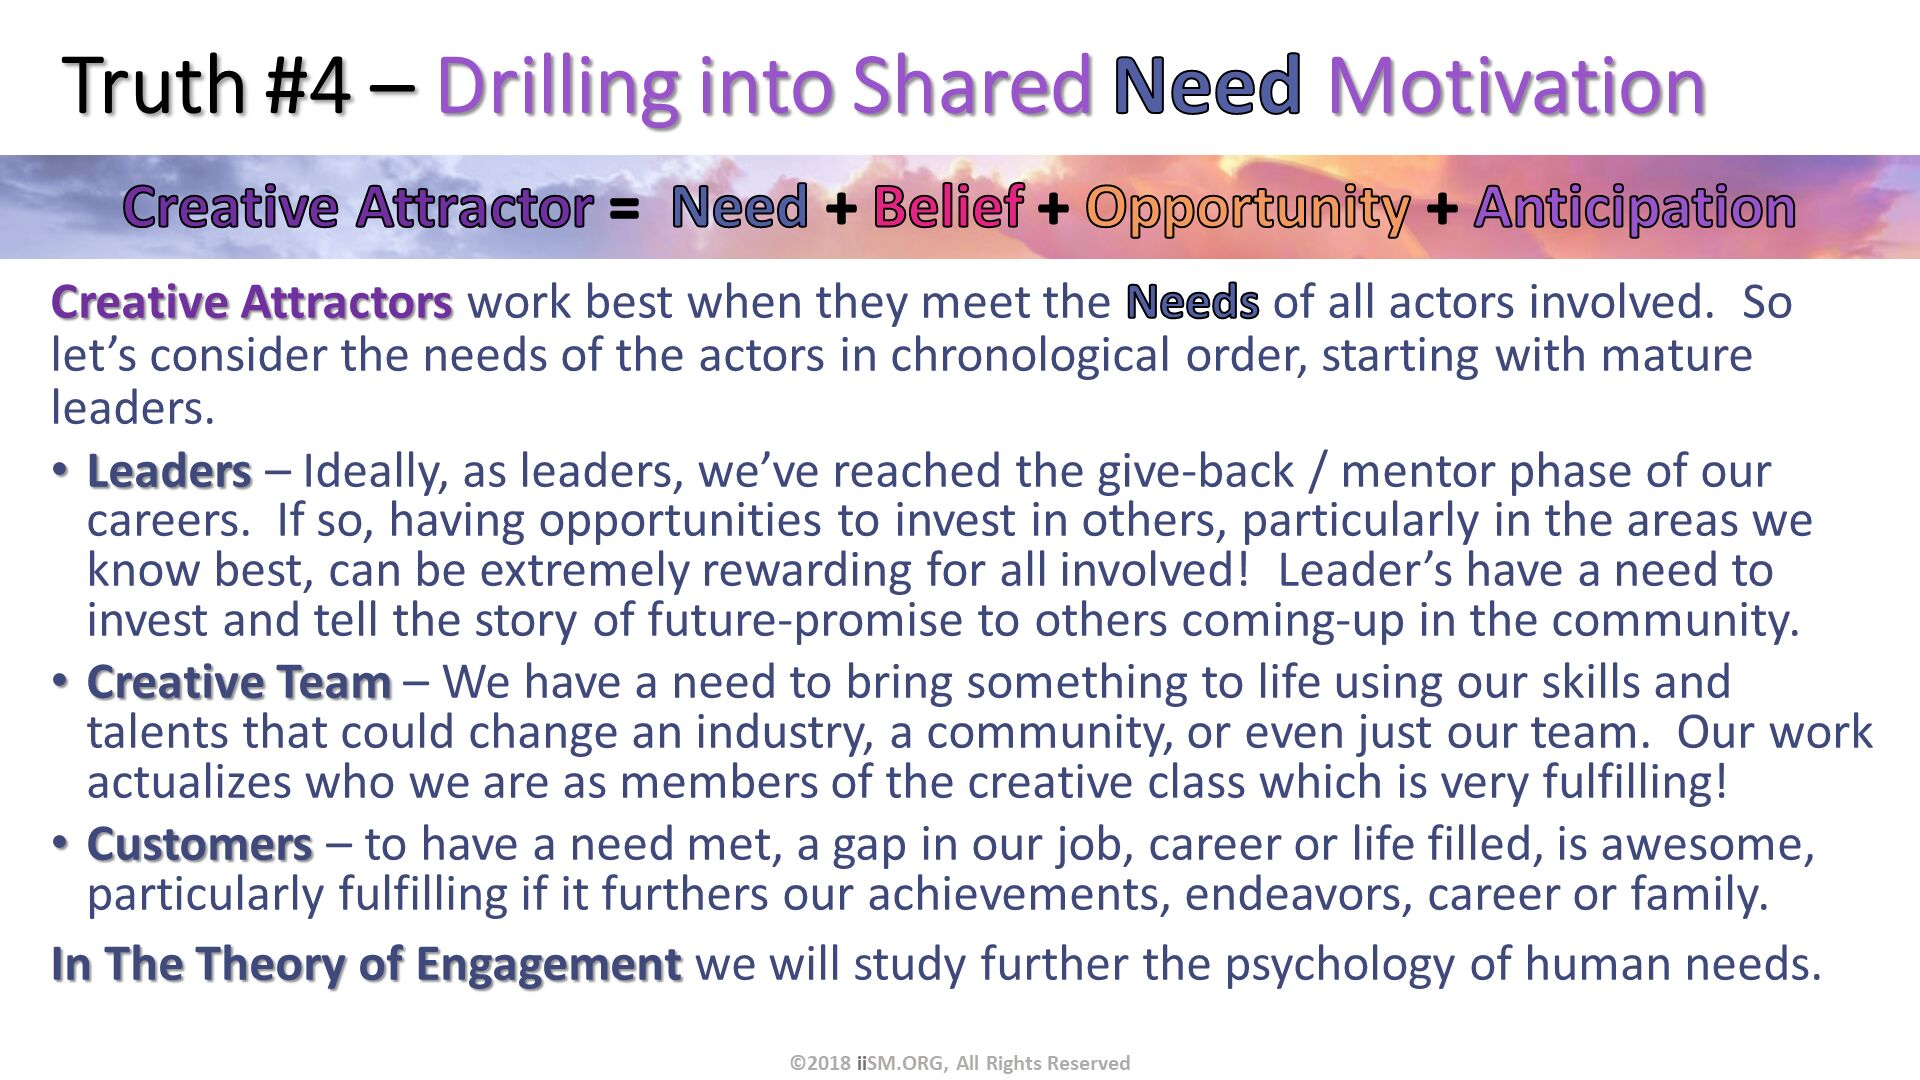 Truth #4 – Drilling into Shared Need Motivation. Creative Attractors work best when they meet the Needs of all actors involved.  So let's consider the needs of the actors in chronological order, starting with mature leaders. Leaders – Ideally, as leaders, we've reached the give-back / mentor phase of our careers.  If so, having opportunities to invest in others, particularly in the areas we know best, can be extremely rewarding for all involved!  Leader's have a need to invest and tell the story of future-promise to others coming-up in the community. Creative Team – We have a need to bring something to life using our skills and talents that could change an industry, a community, or even just our team.  Our work actualizes who we are as members of the creative class which is very fulfilling! Customers – to have a need met, a gap in our job, career or life filled, is awesome, particularly fulfilling if it furthers our achievements, endeavors, career or family. In The Theory of Engagement we will study further the psychology of human needs. . ©2018 iiSM.ORG, All Rights Reserved.